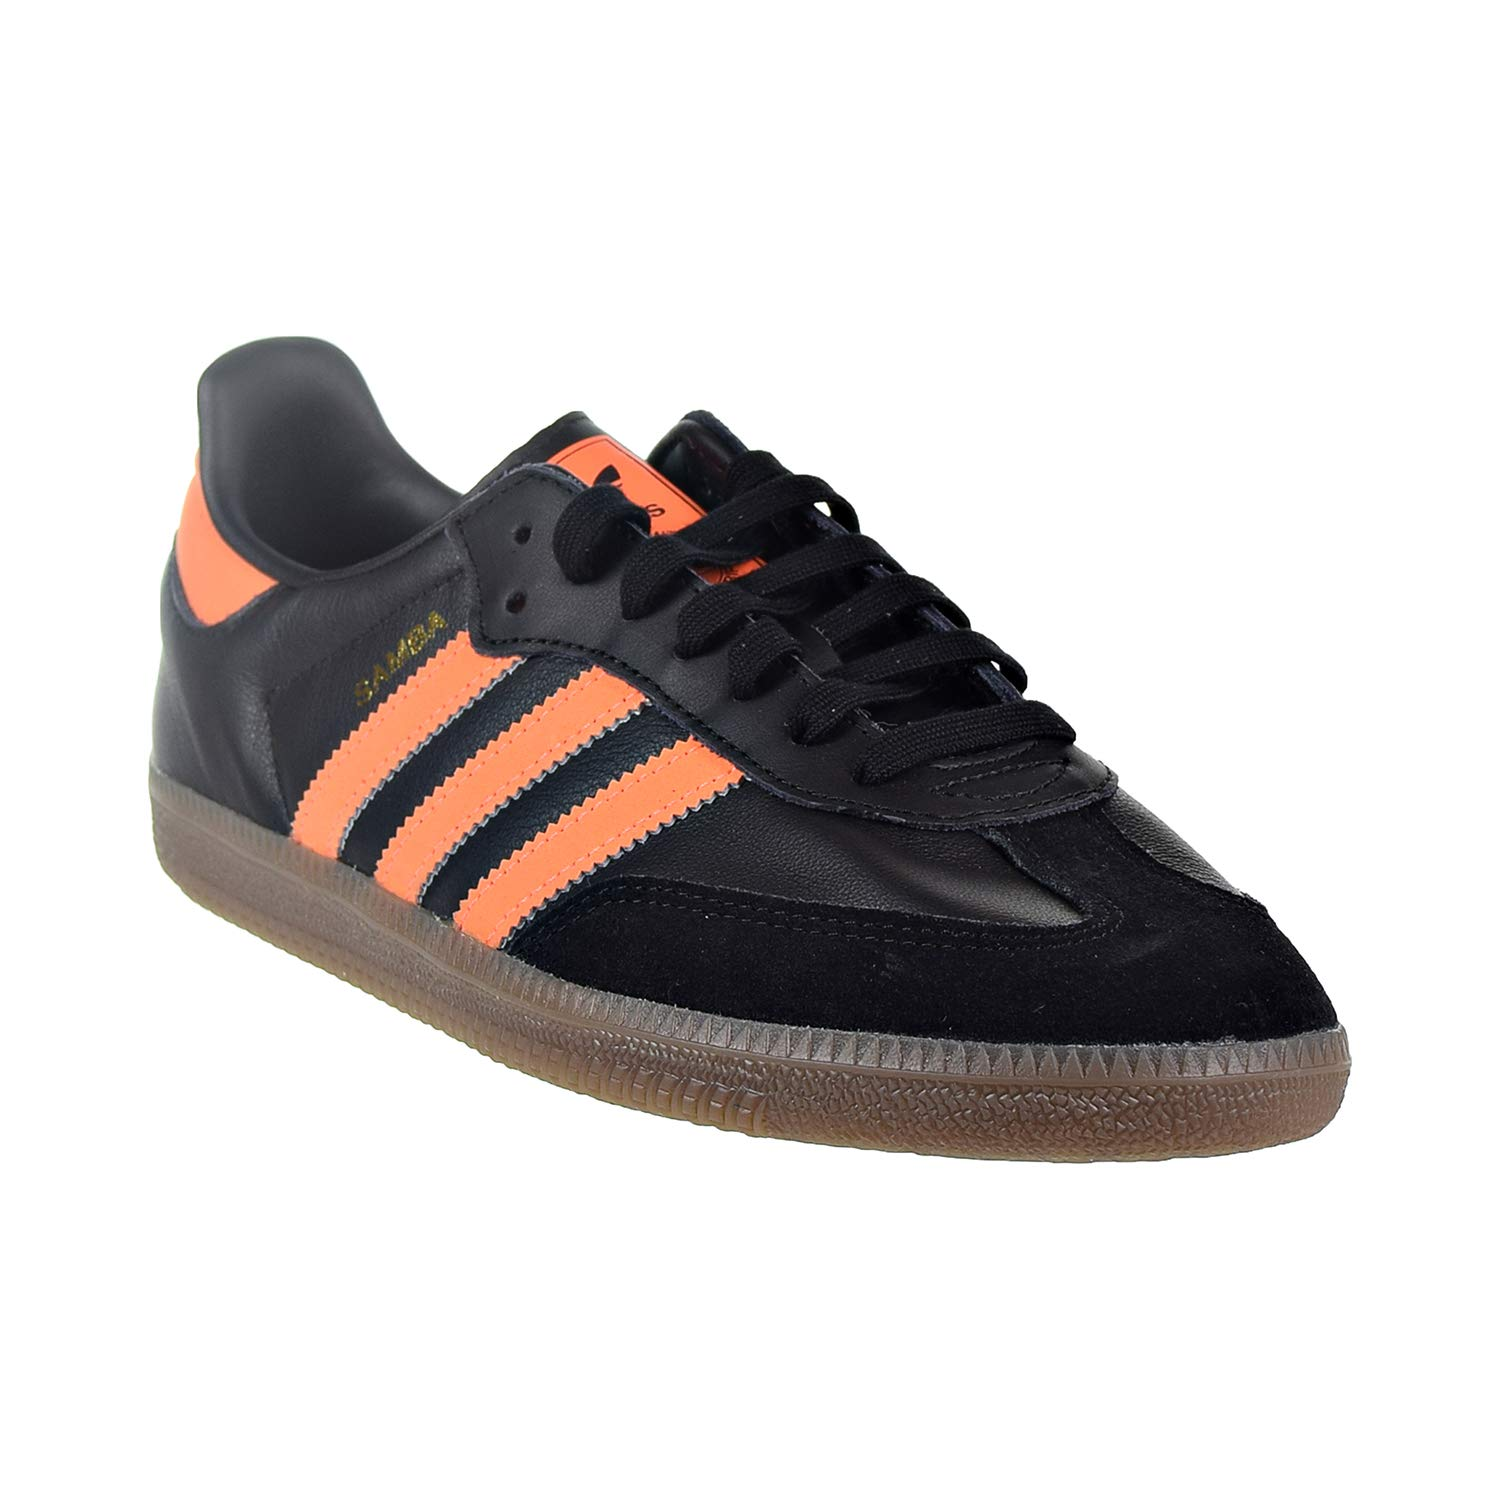 3ff9889dc ... Core Black Hi-res orange orange orange gold Metalic adidas Men's Samba  Og Gymnastics shoes ...